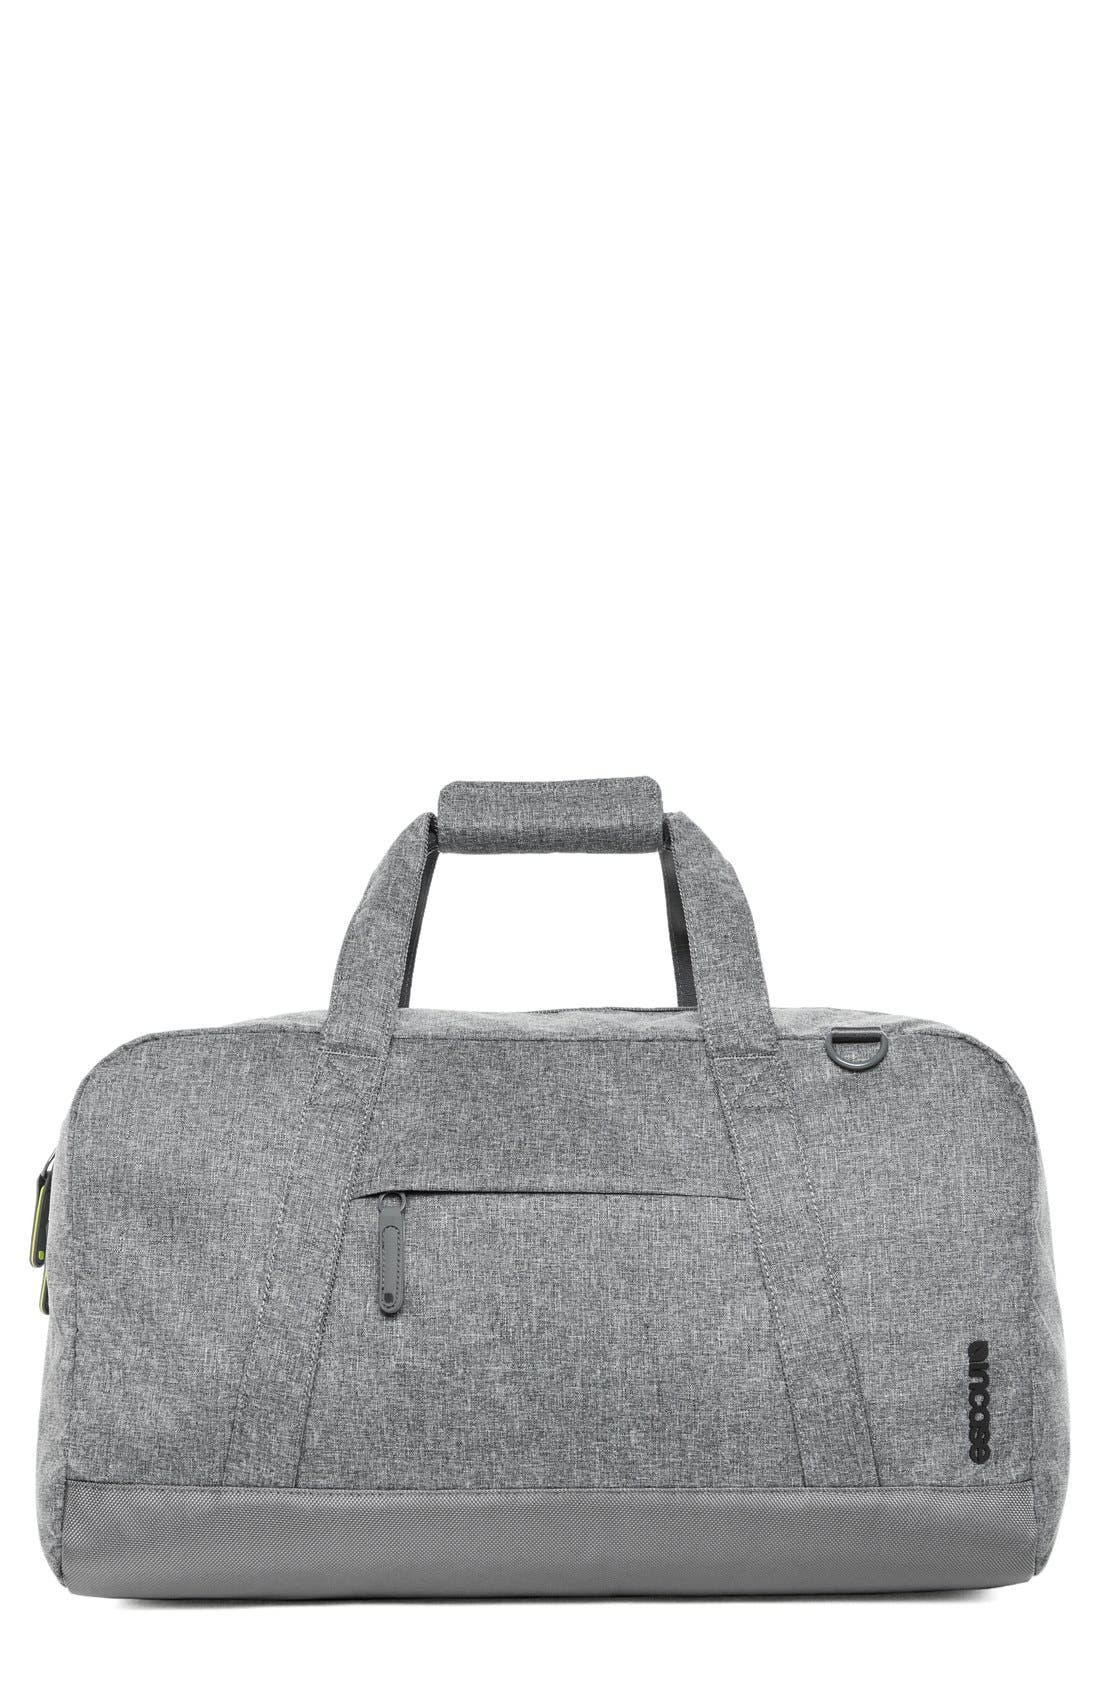 EO Duffel Bag,                             Main thumbnail 1, color,                             Heather Grey